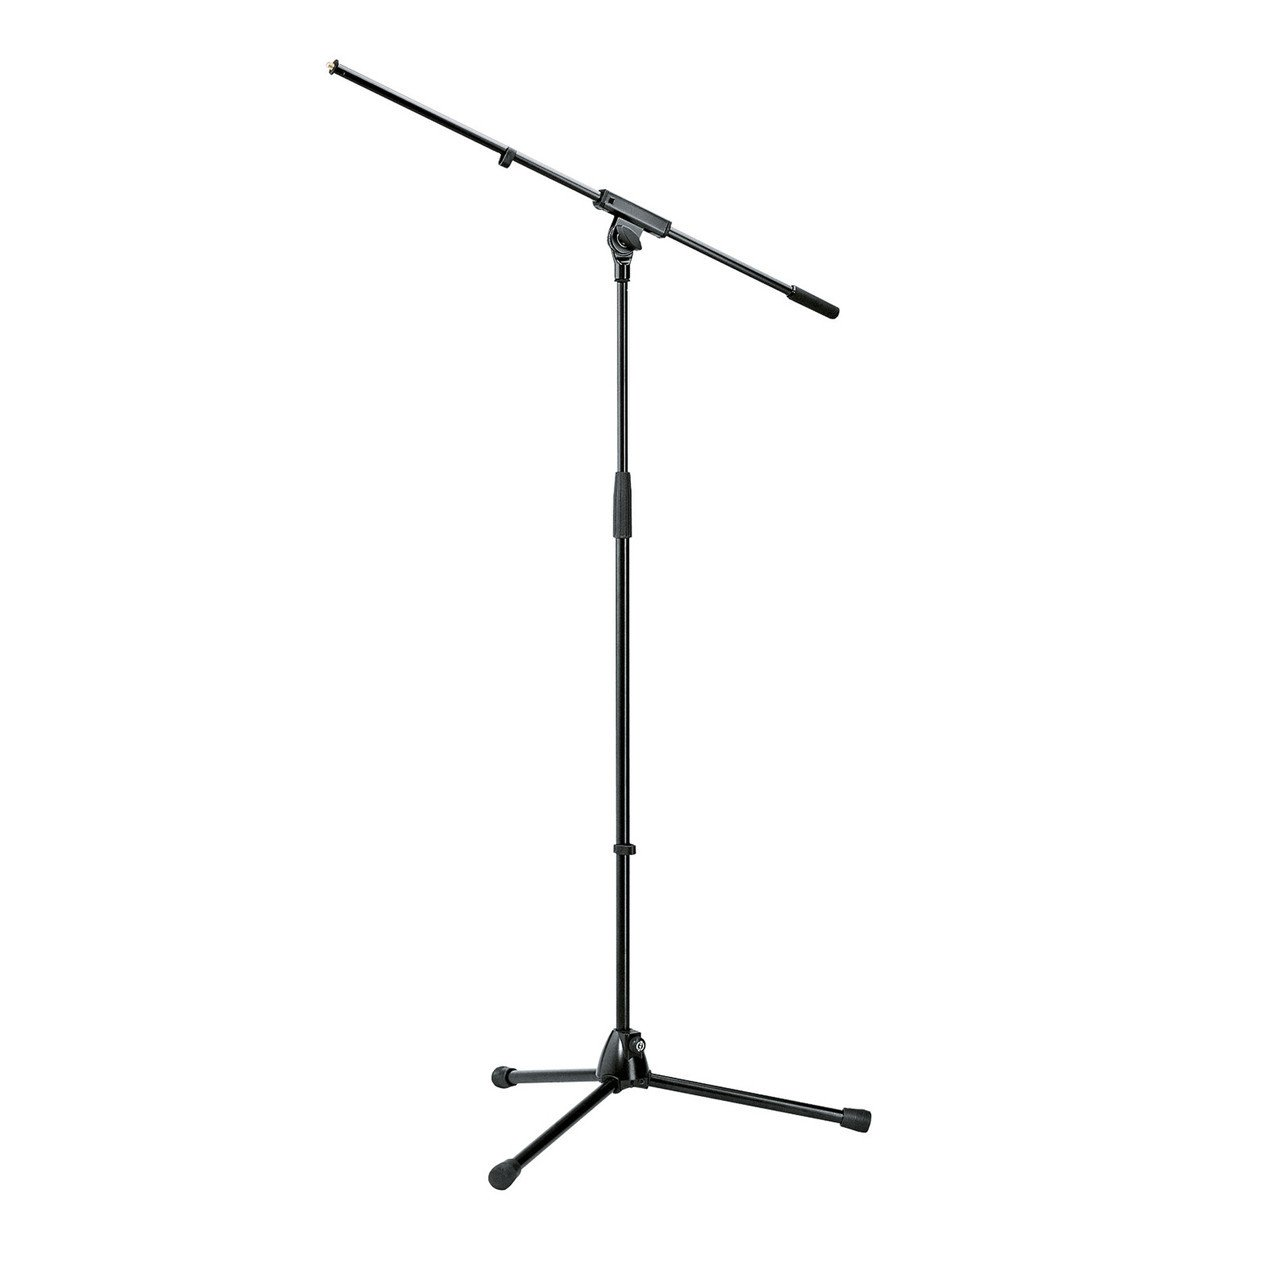 Microphone Accessories - Konig & Meyer 210/6 Microphone Boom Stand